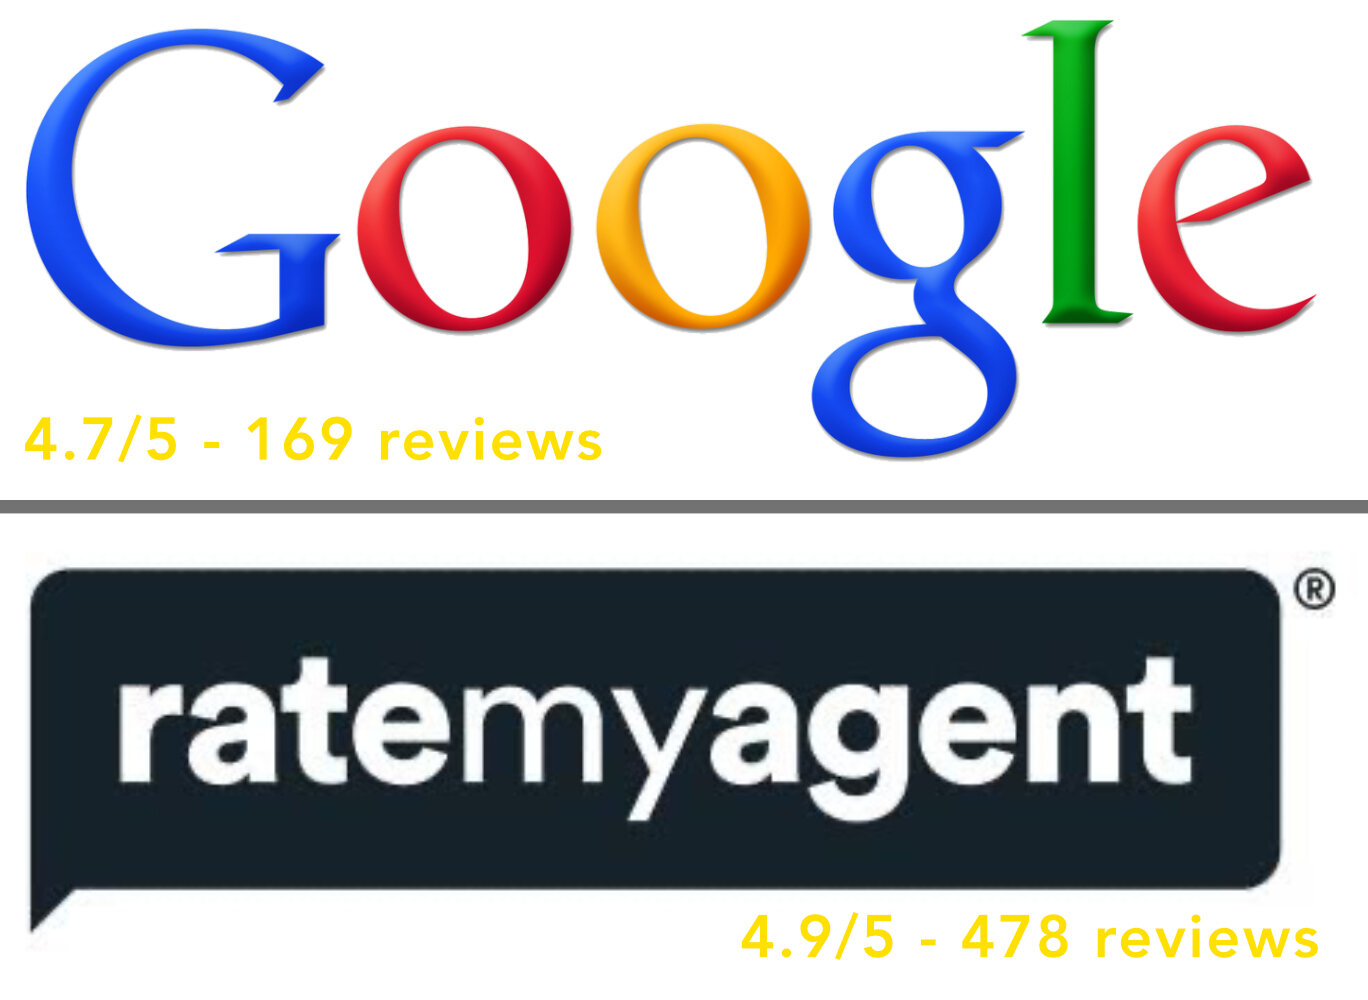 High ratings on Google and RatemyAgent.